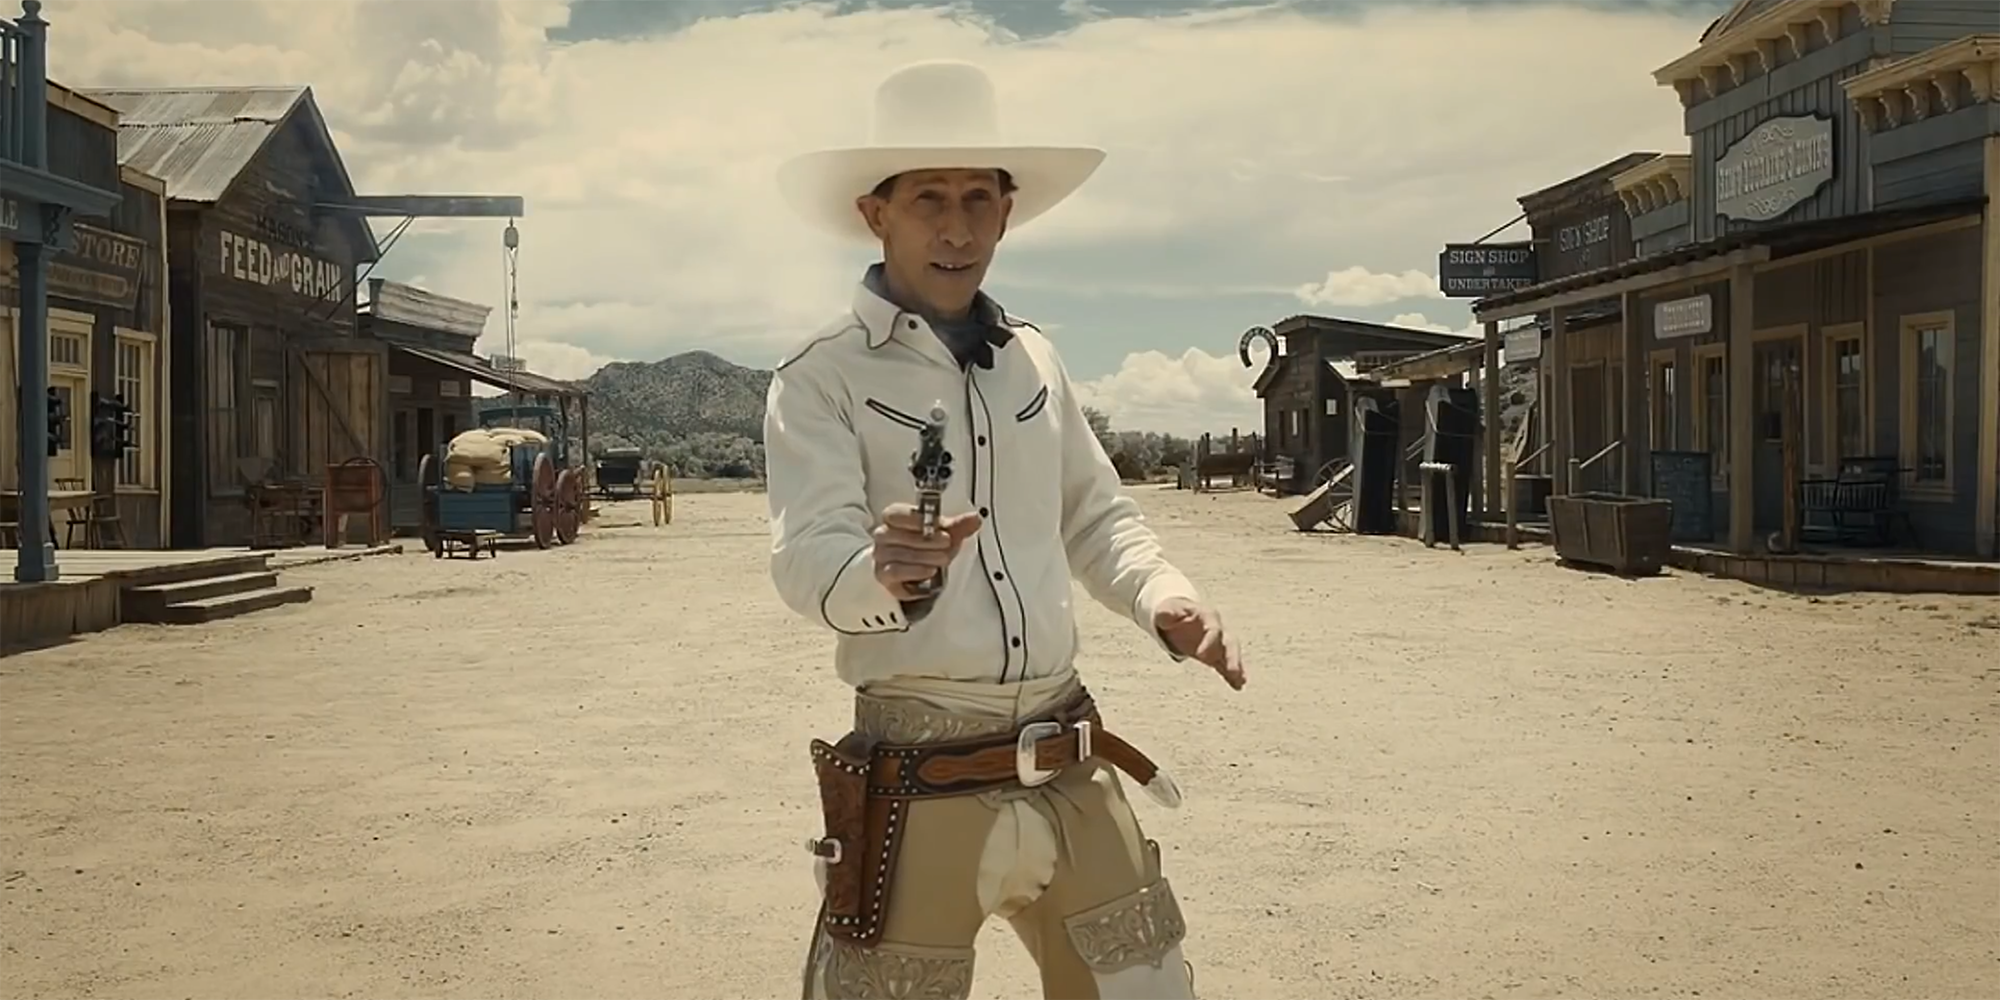 Best Movies on Netflix The Ballad of Buster Scruggs